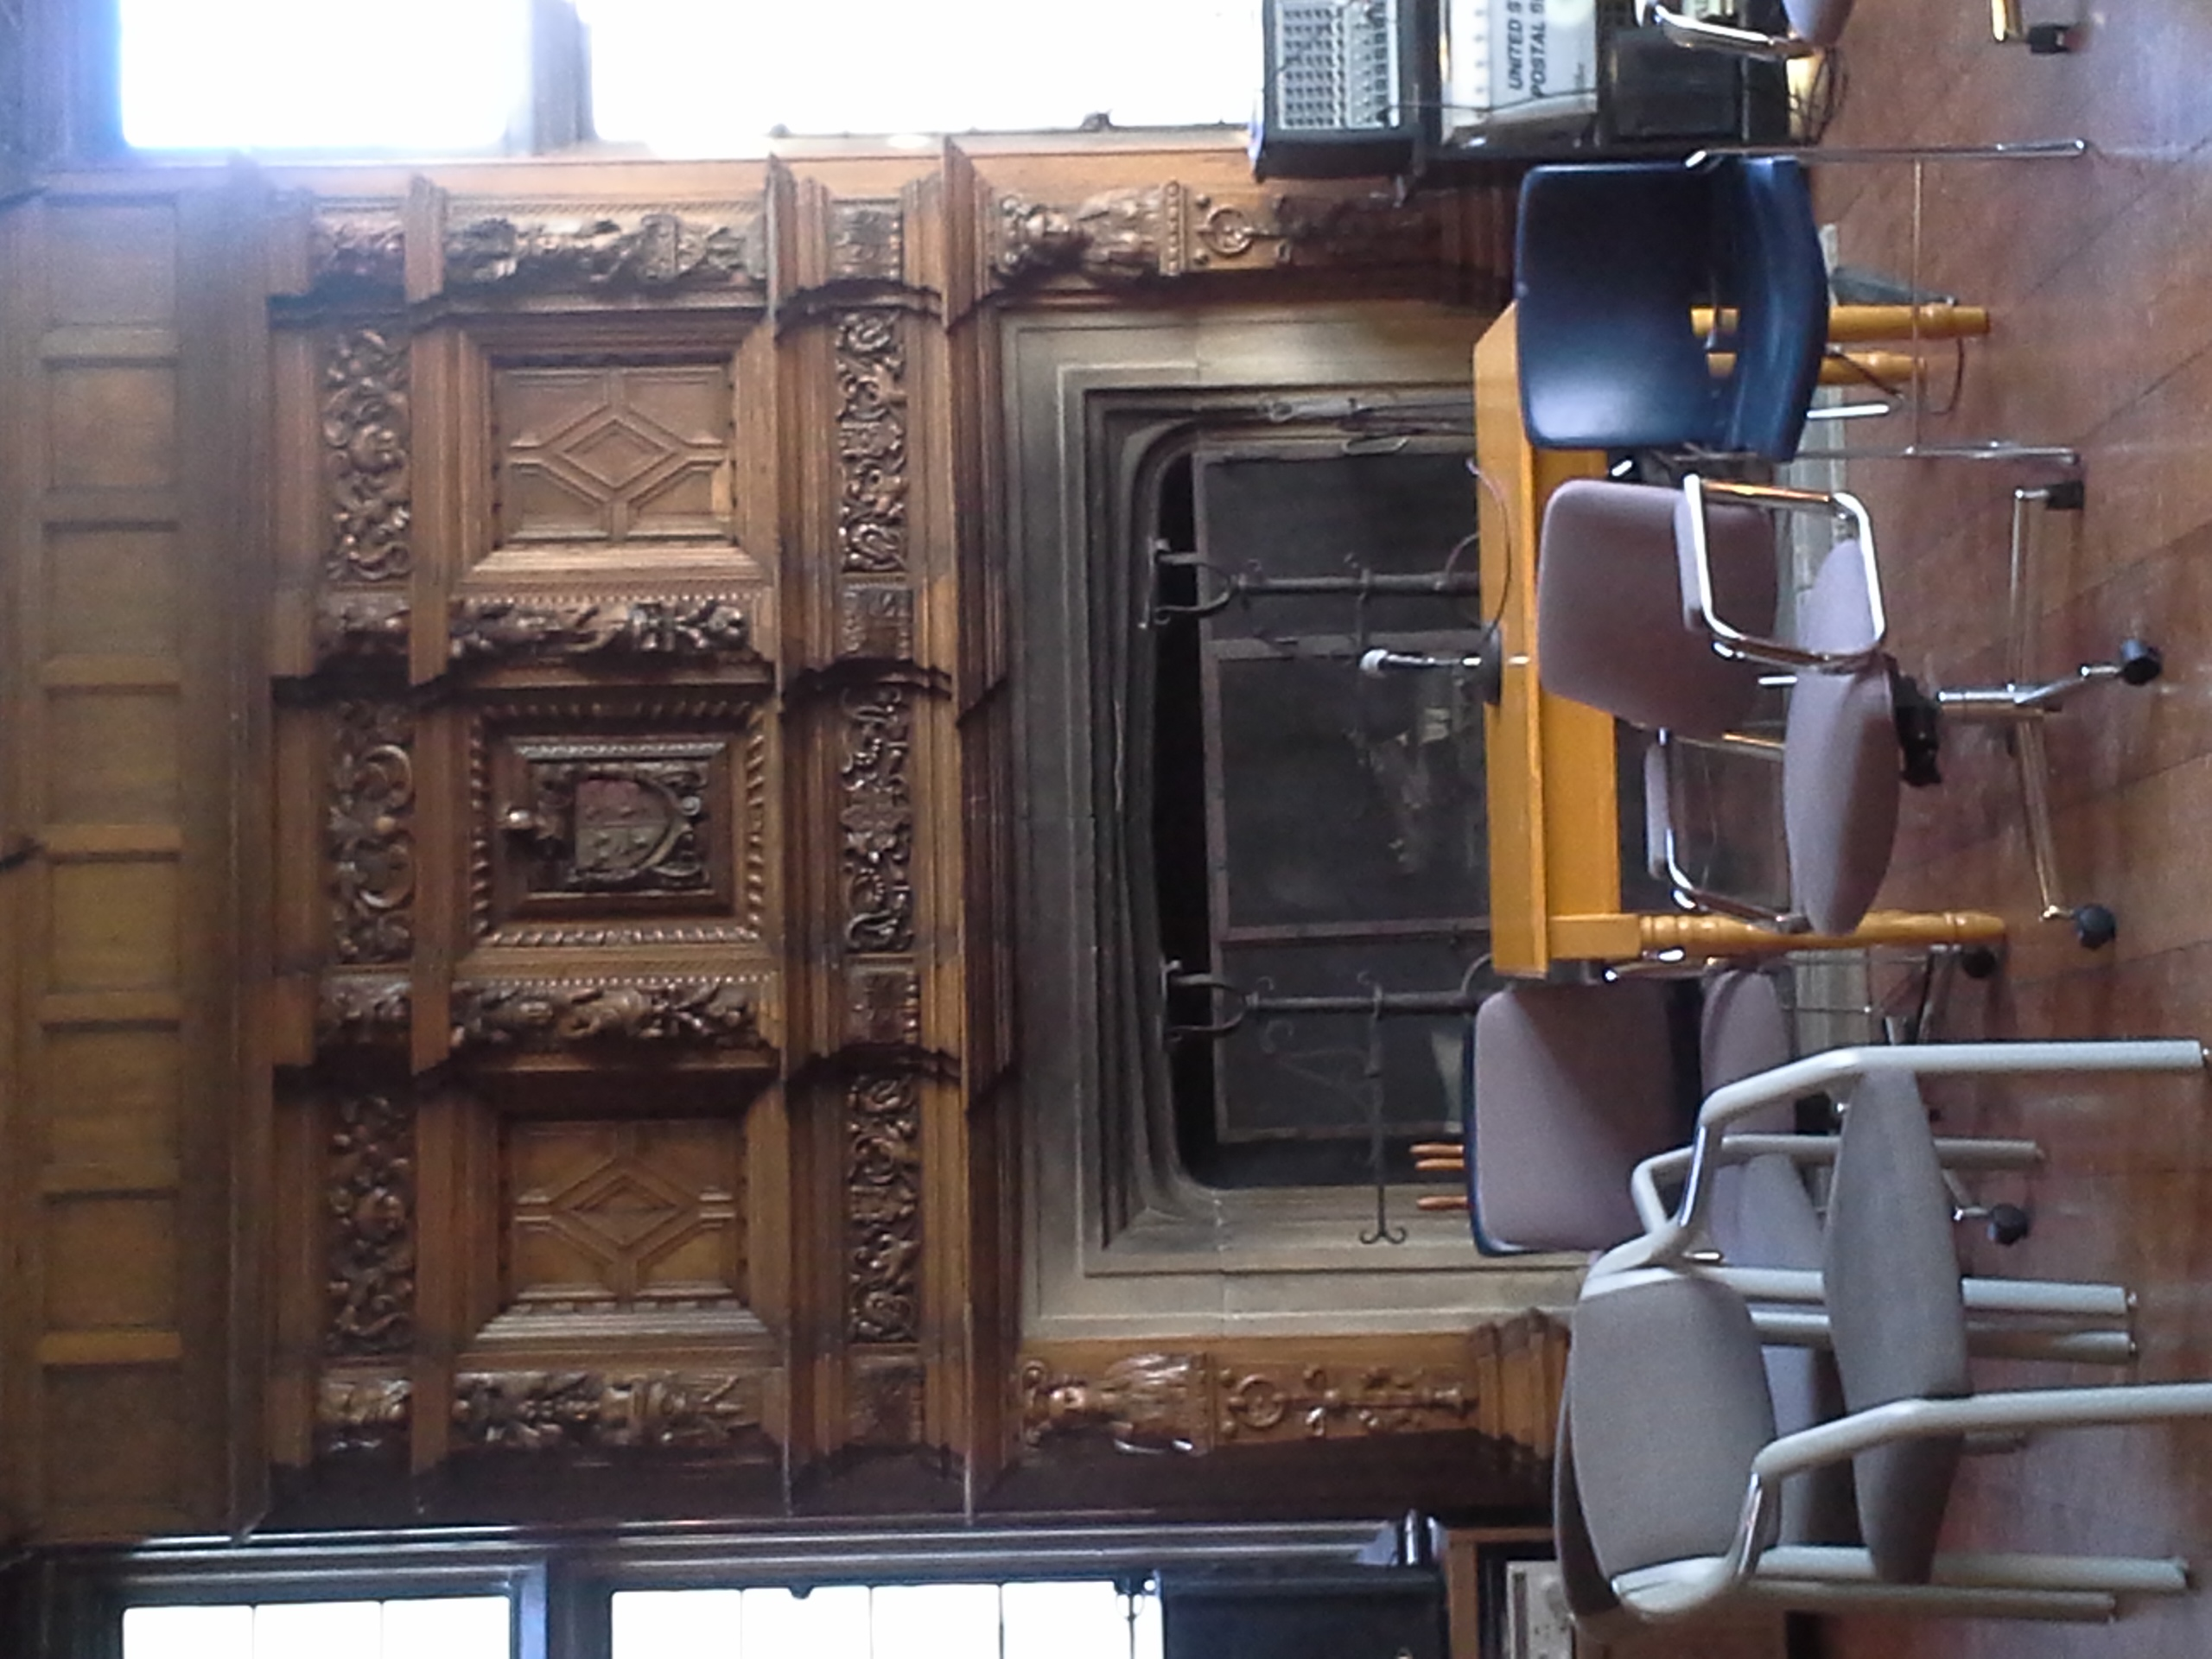 A picture of some of the ornamental woodwork and carving located in the Pillsbury mansion